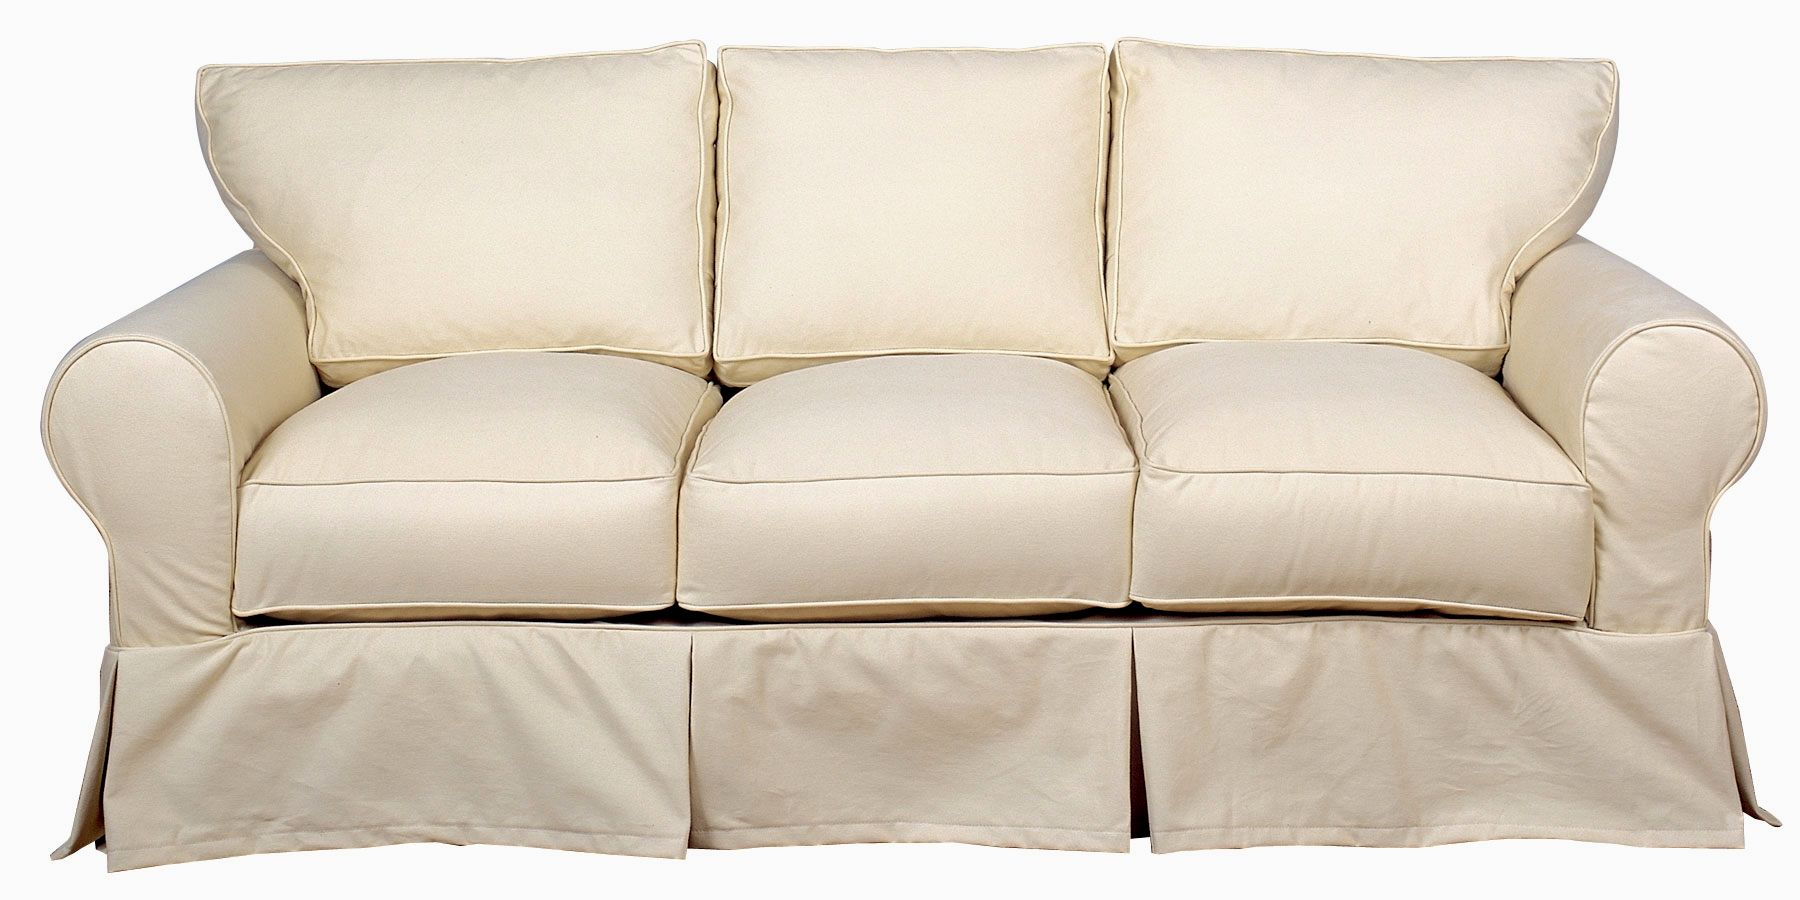 Beau Wonderful 2 Piece T Cushion Sofa Slipcover Design Unique 2 Piece T Cushion  Sofa Slipcover